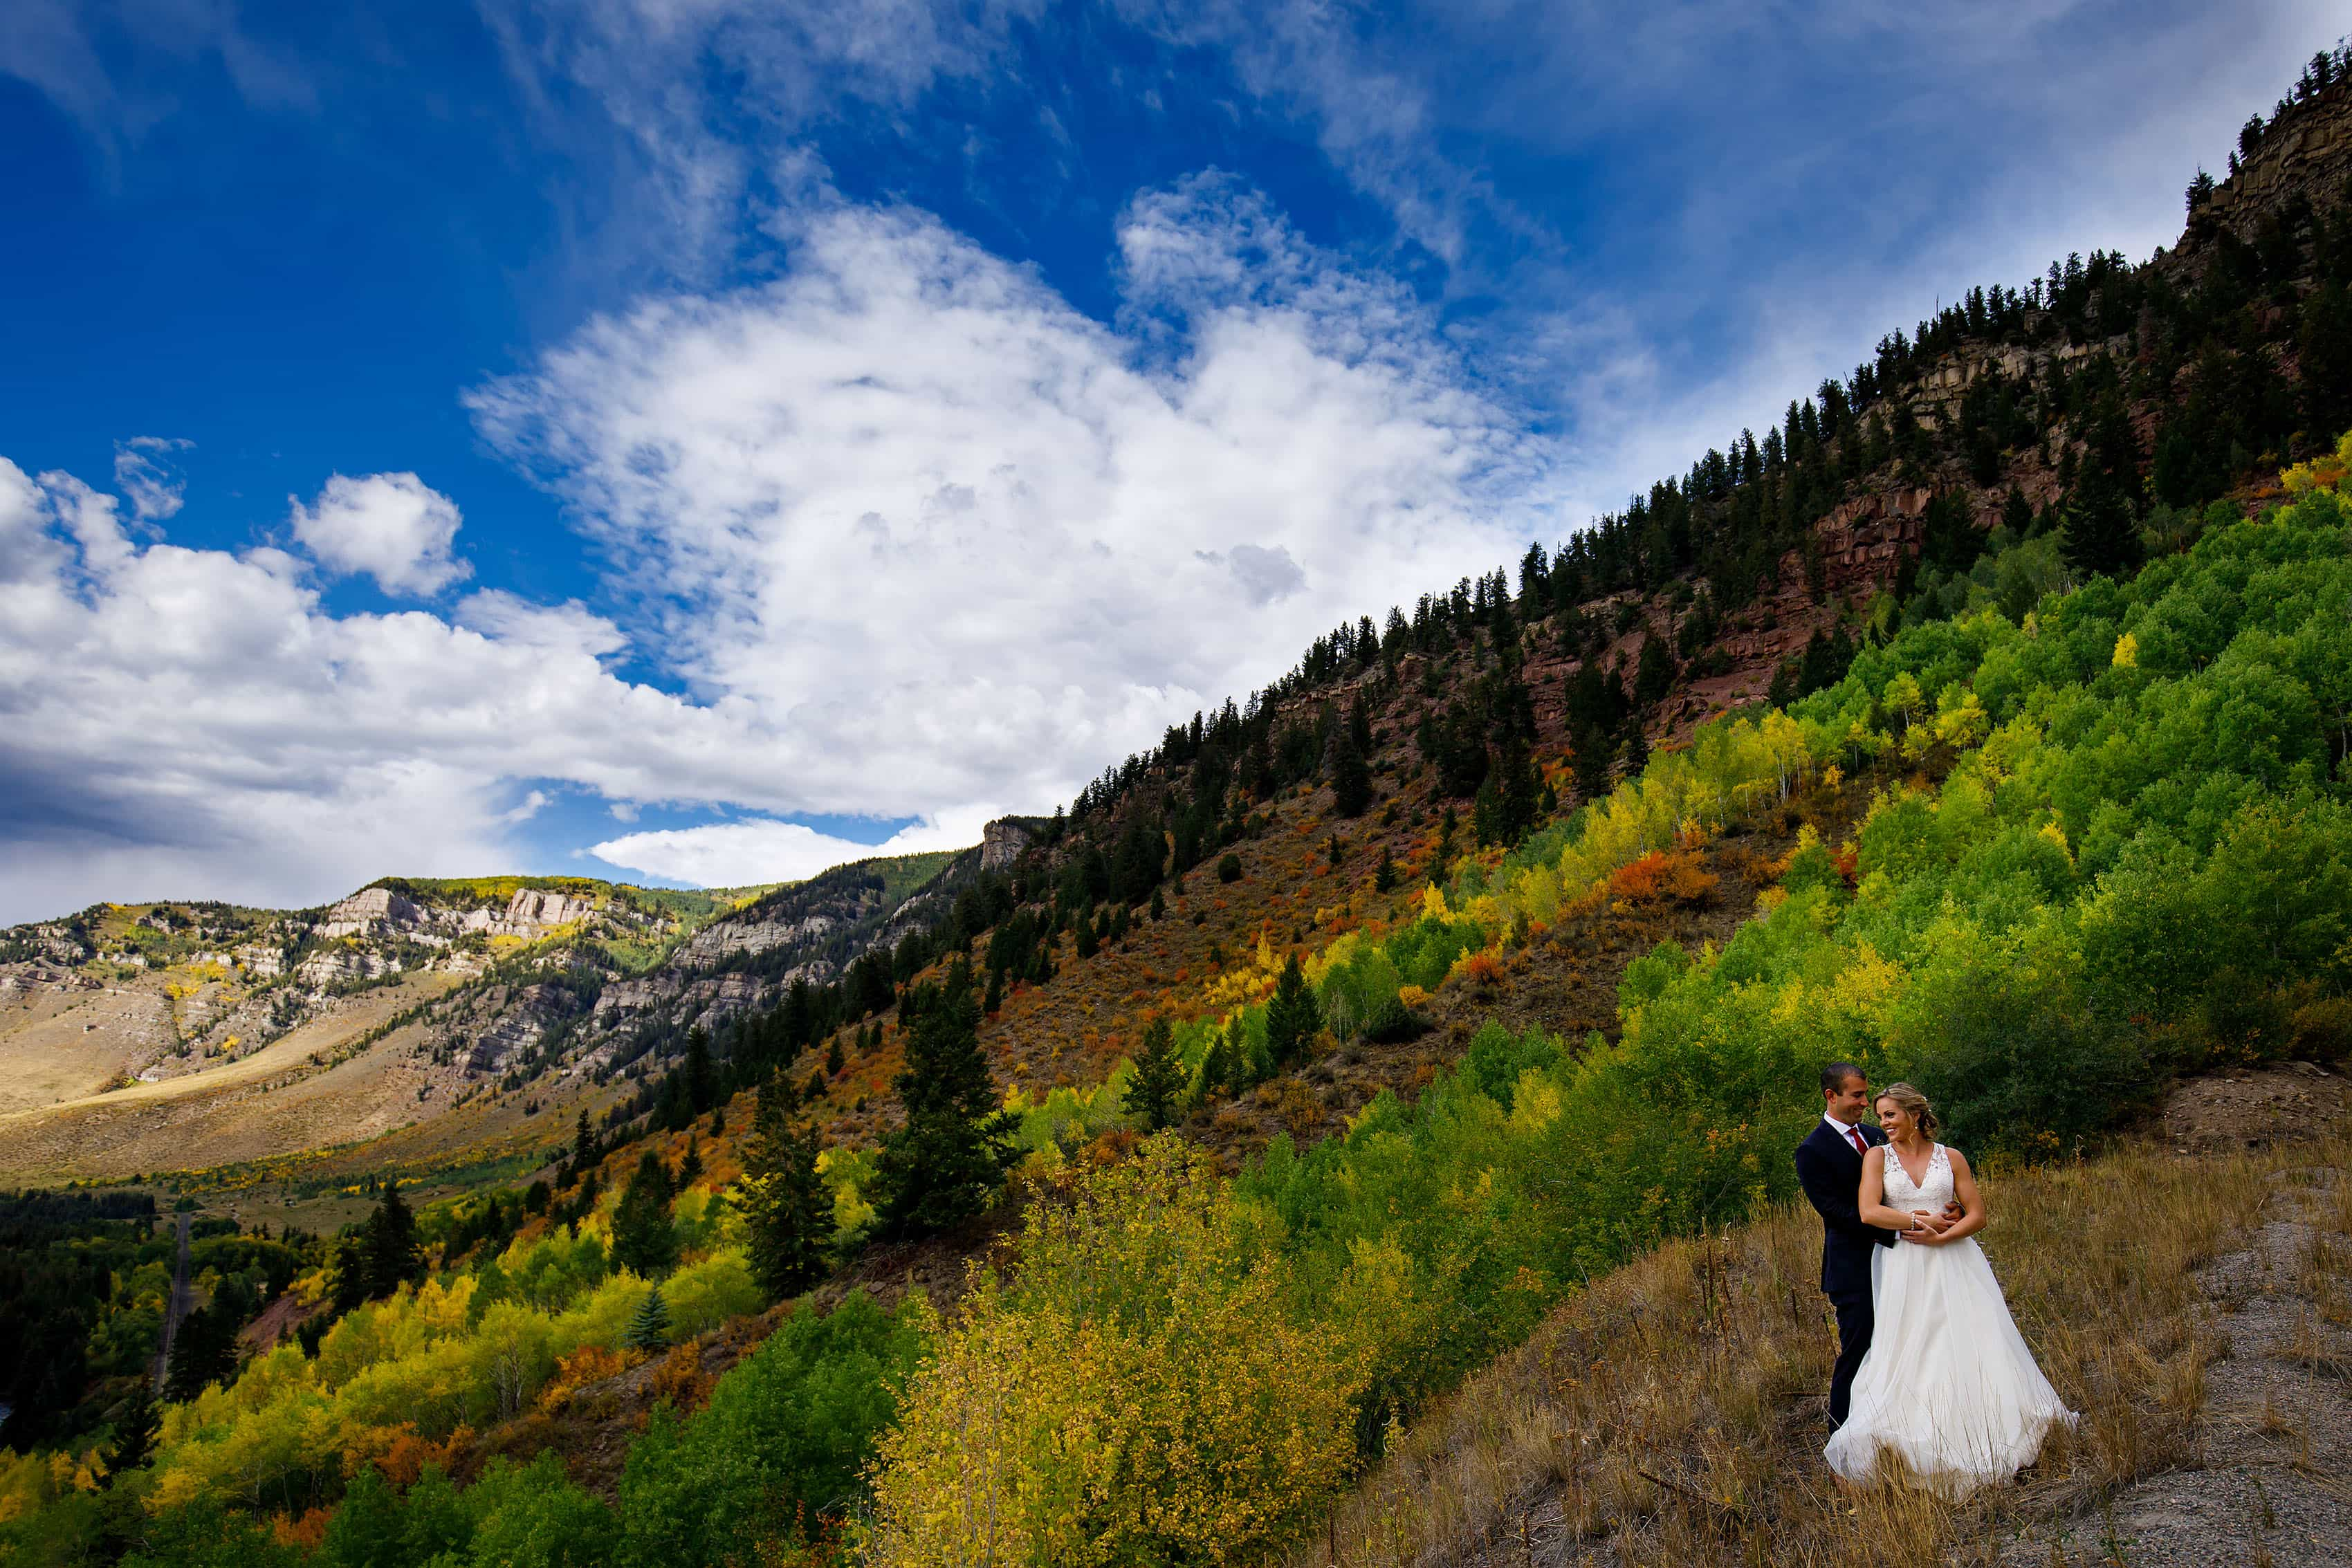 A couple embrace along the 10th mountain division memorial highway near a grove of colorful aspen trees in the fall during their Camp Hale wedding